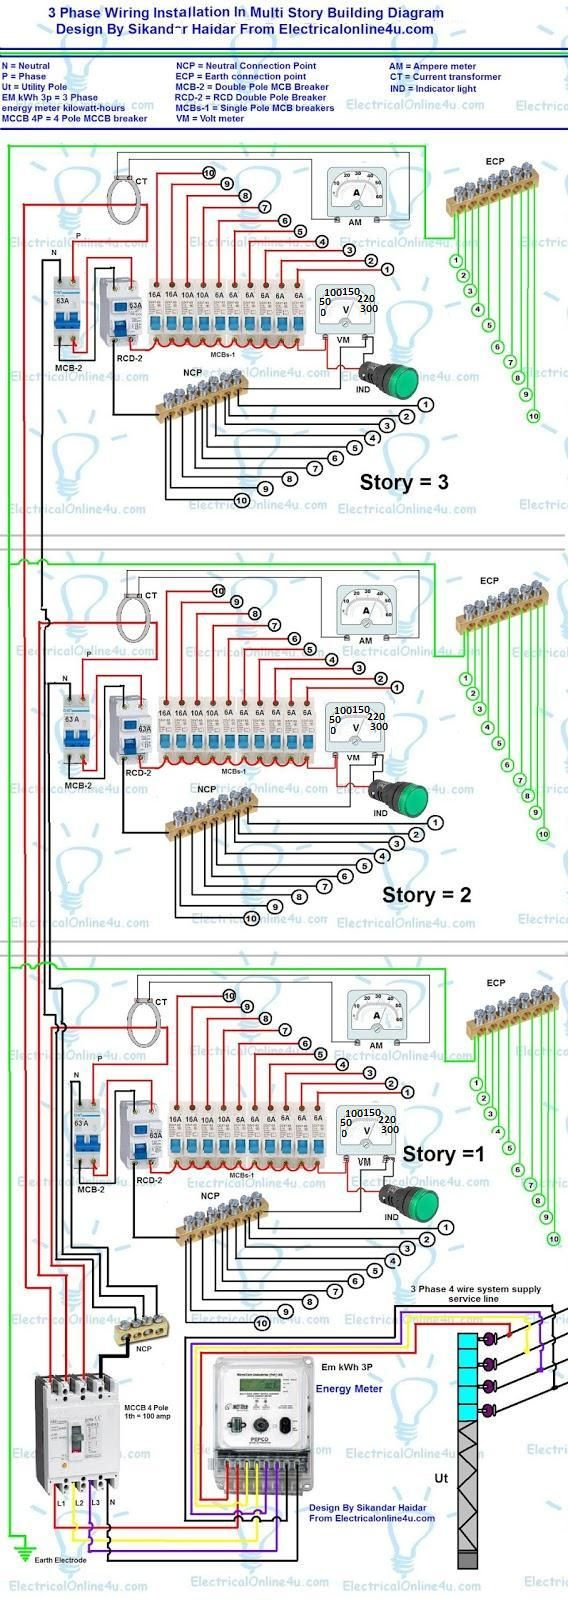 hight resolution of 3 phase wiring installation diagram 3 phase wiring installation diagram basic electrical